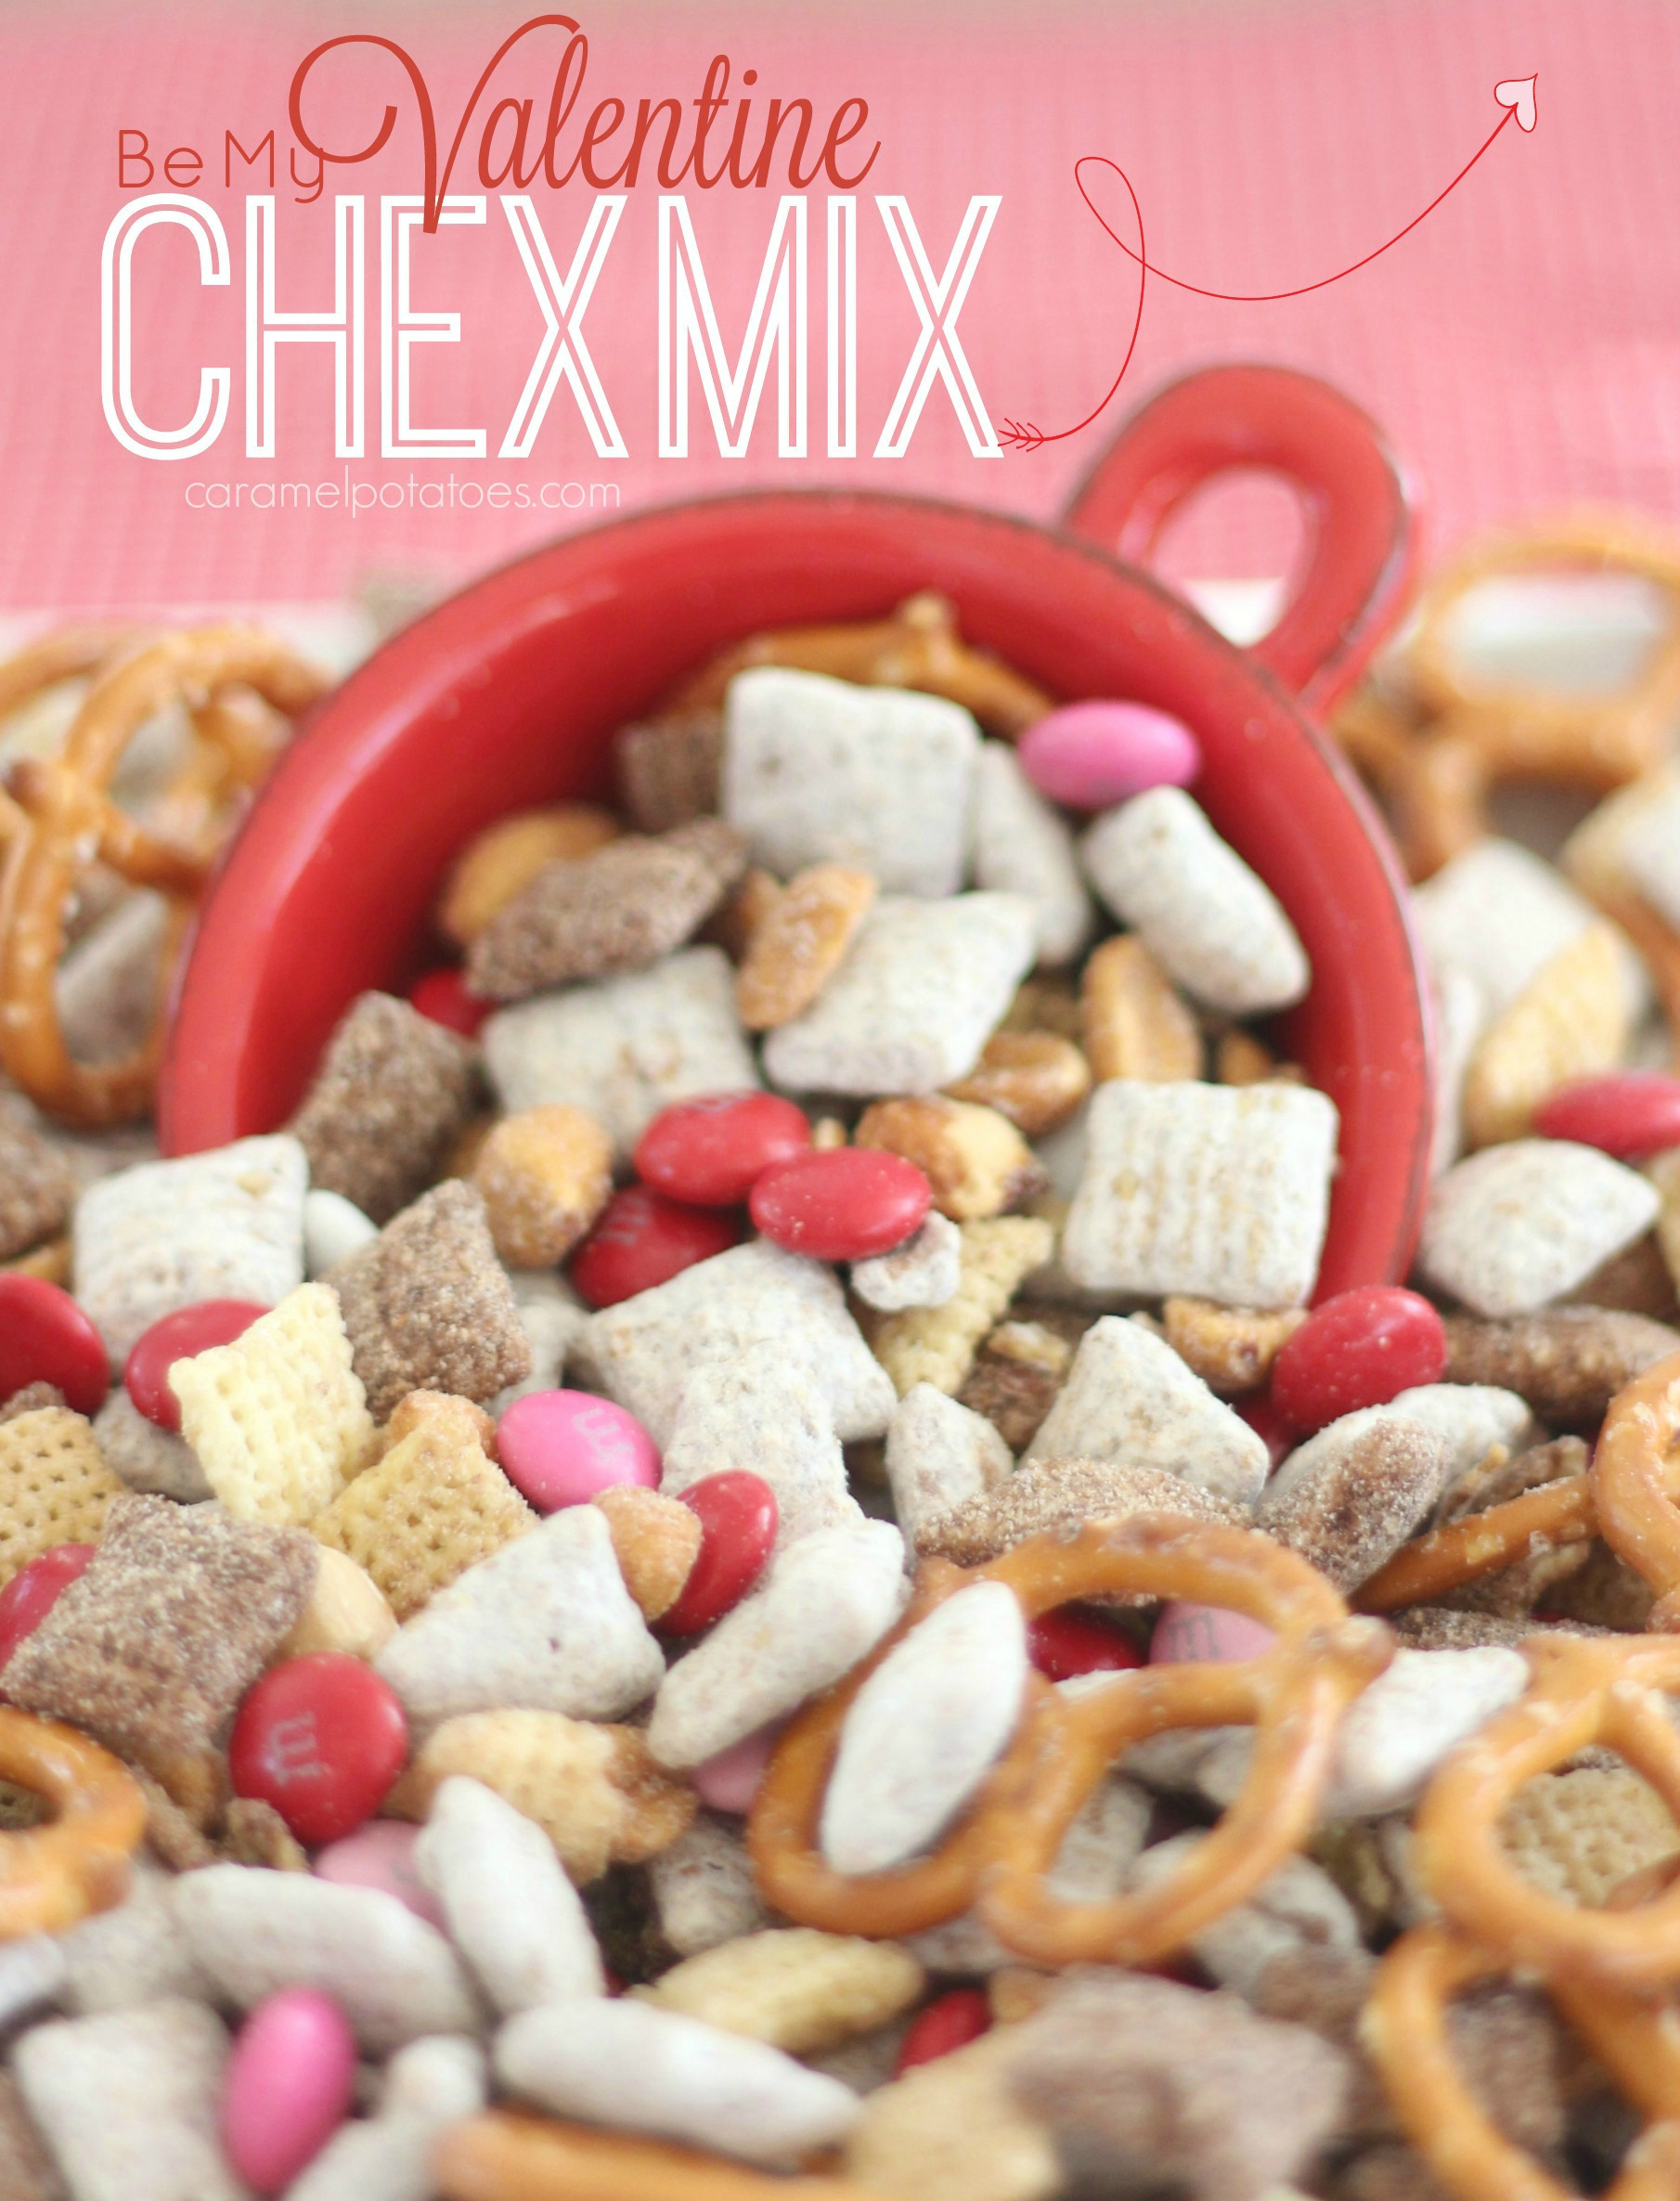 Be My Valentine Chex Mix